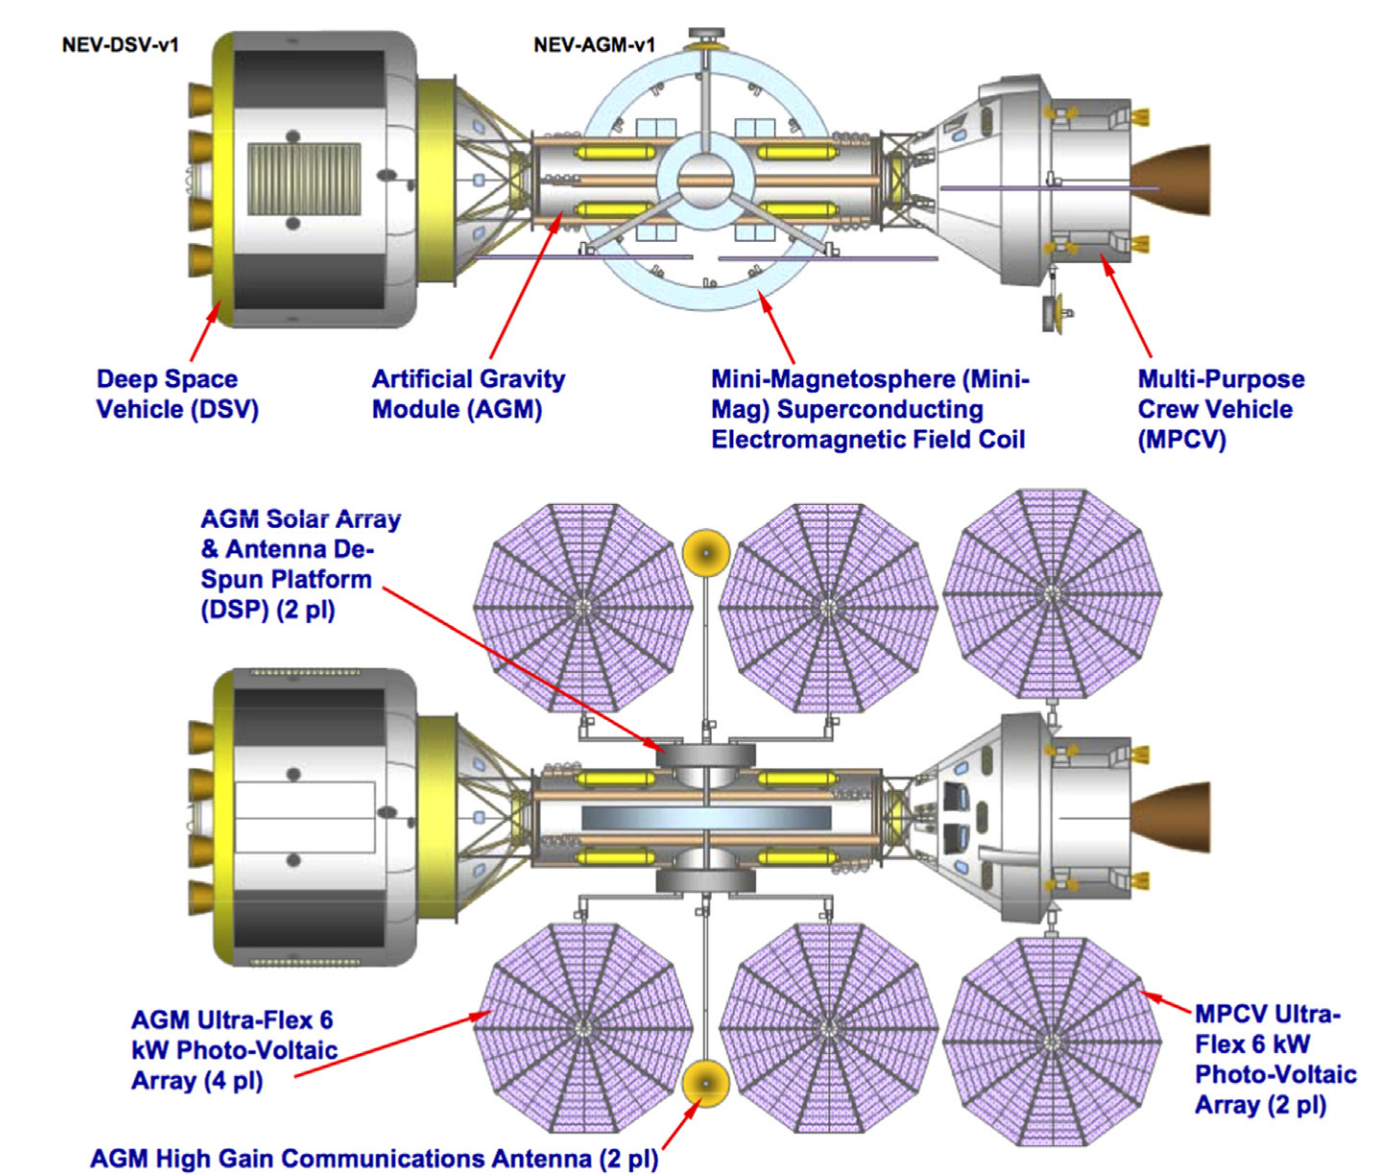 Superconducting Magnetic Space Radiation Shielding